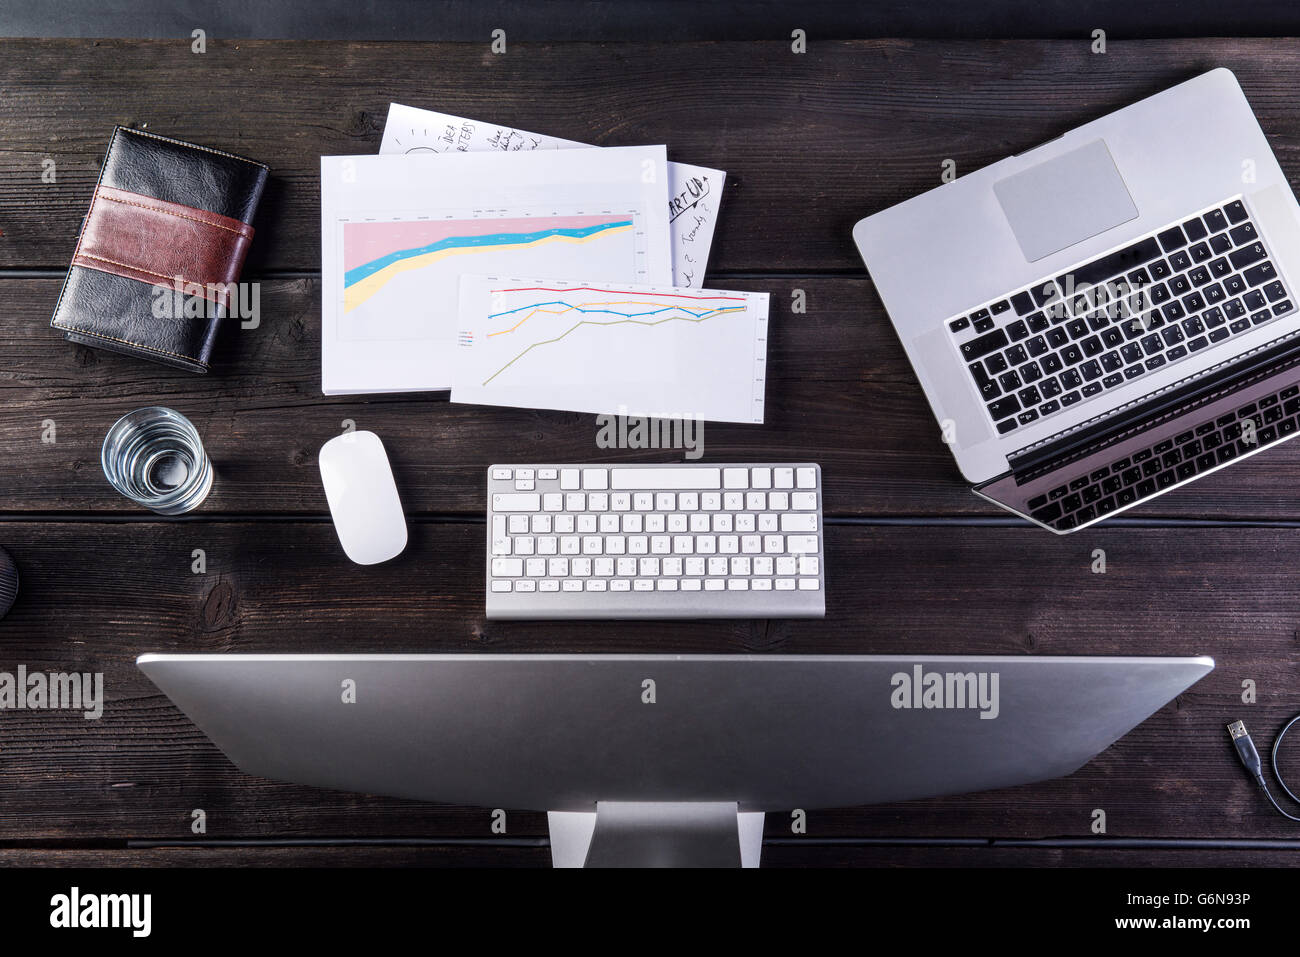 Desk with computers and charts, overhead view - Stock Image